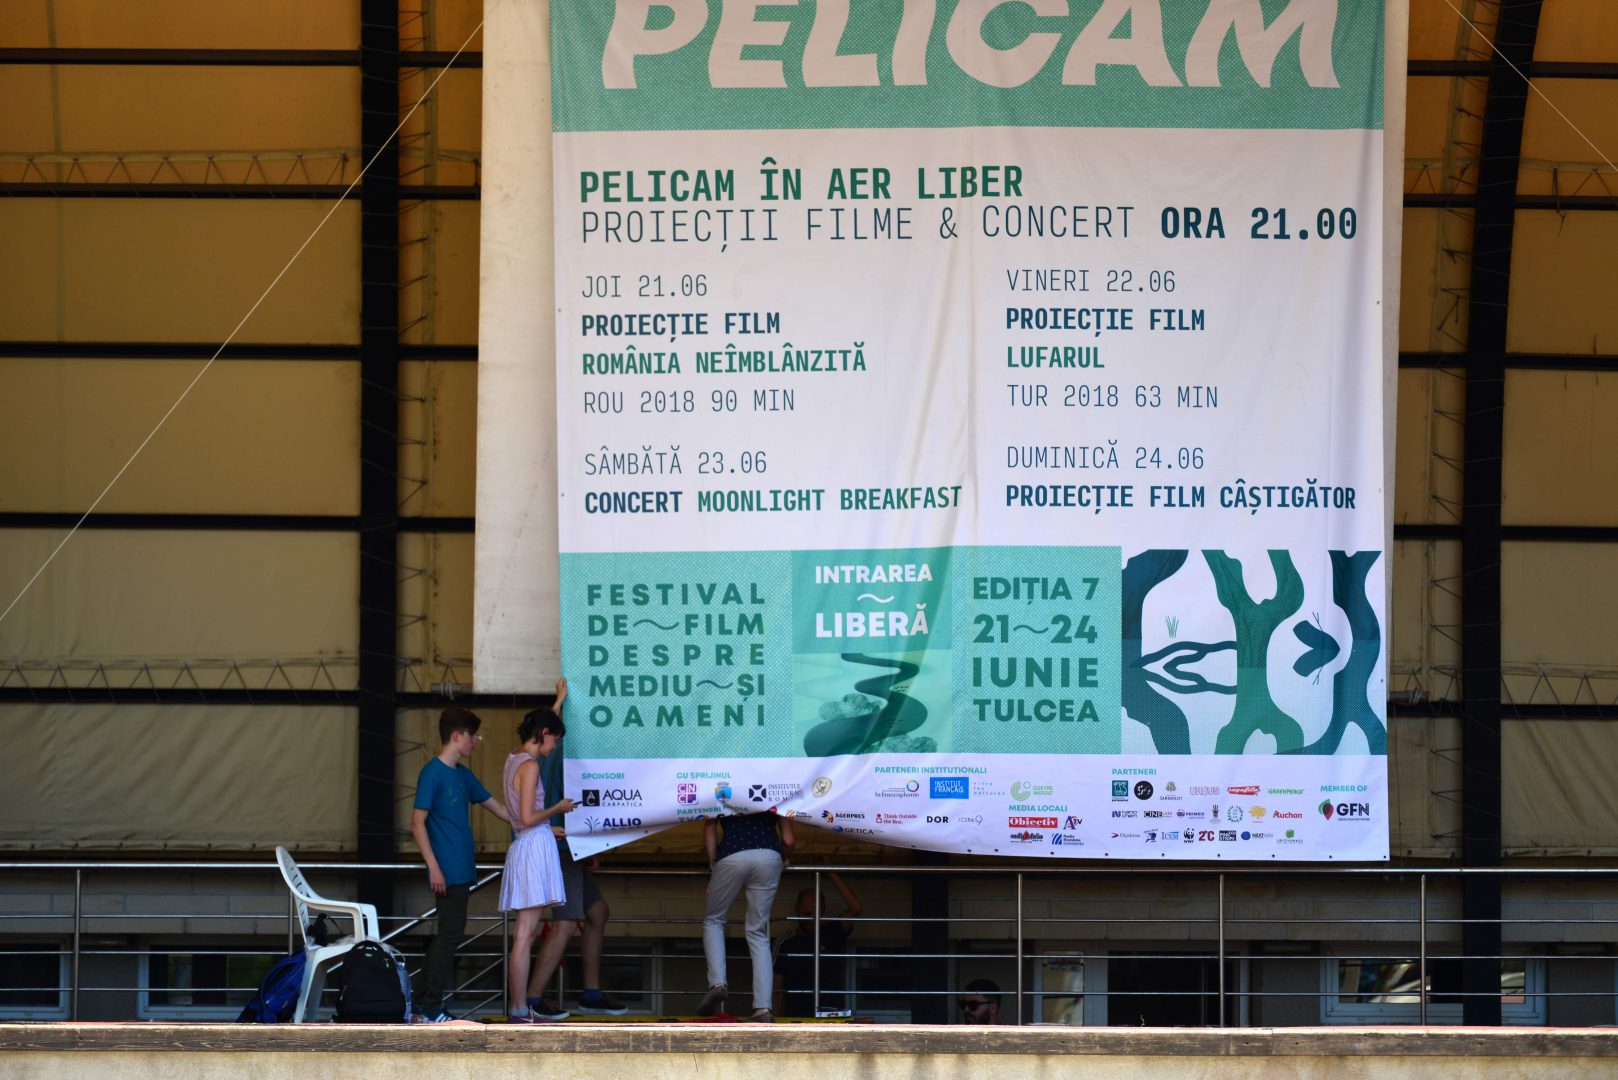 Pelicam 2018 begins today: four days of films, debates, exhibitions, concert